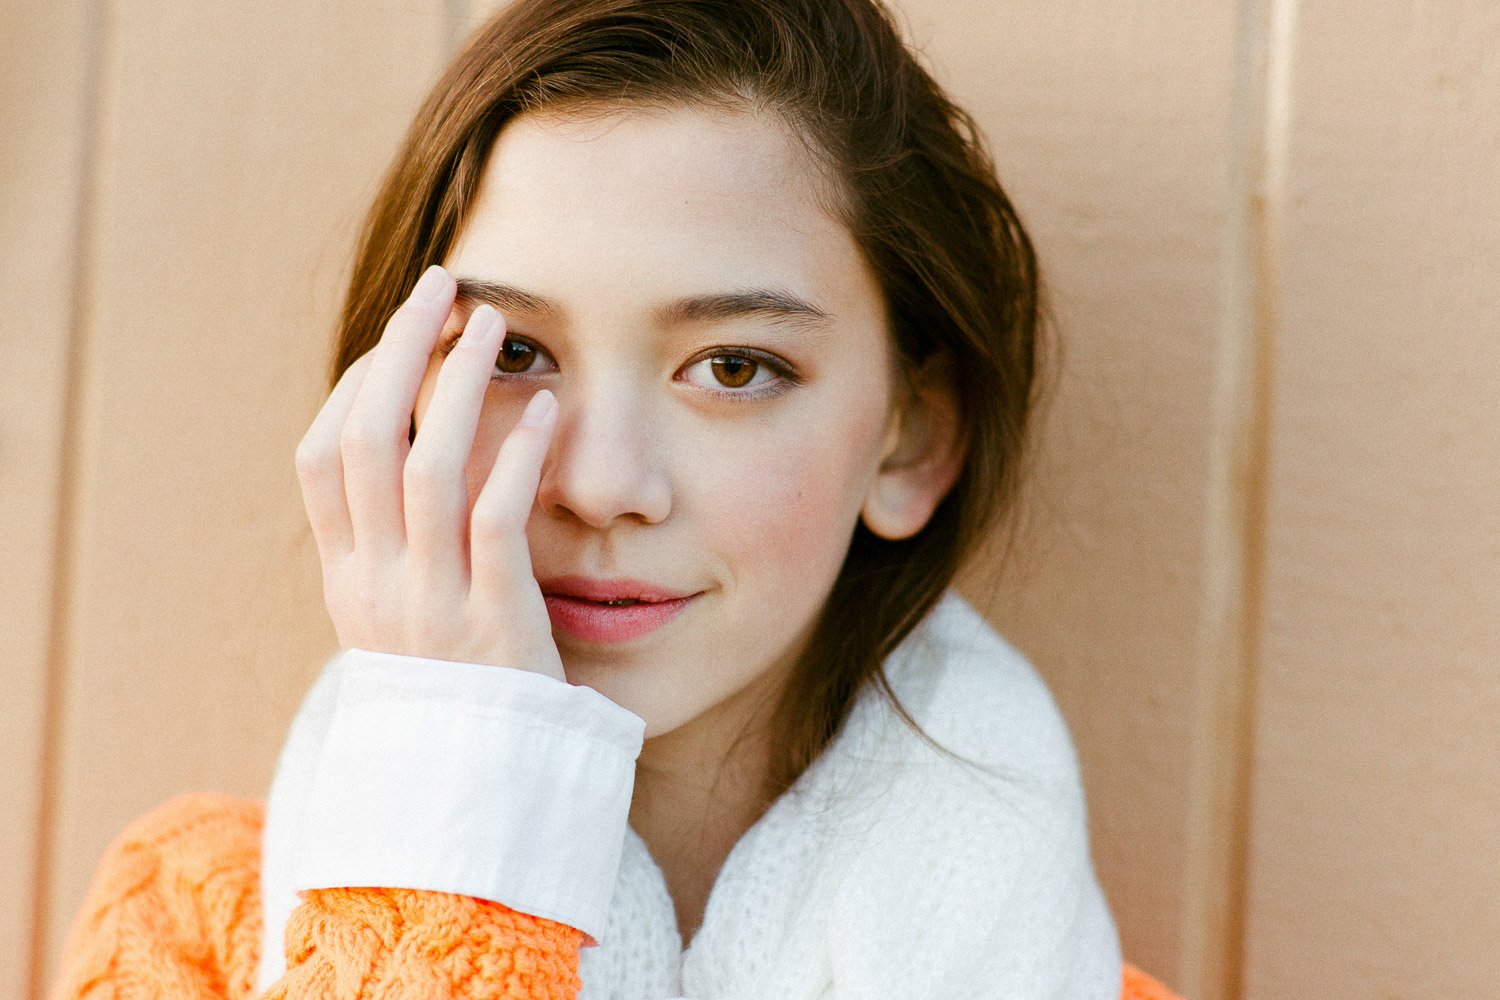 Image of an orange sweater girl covers her one eye